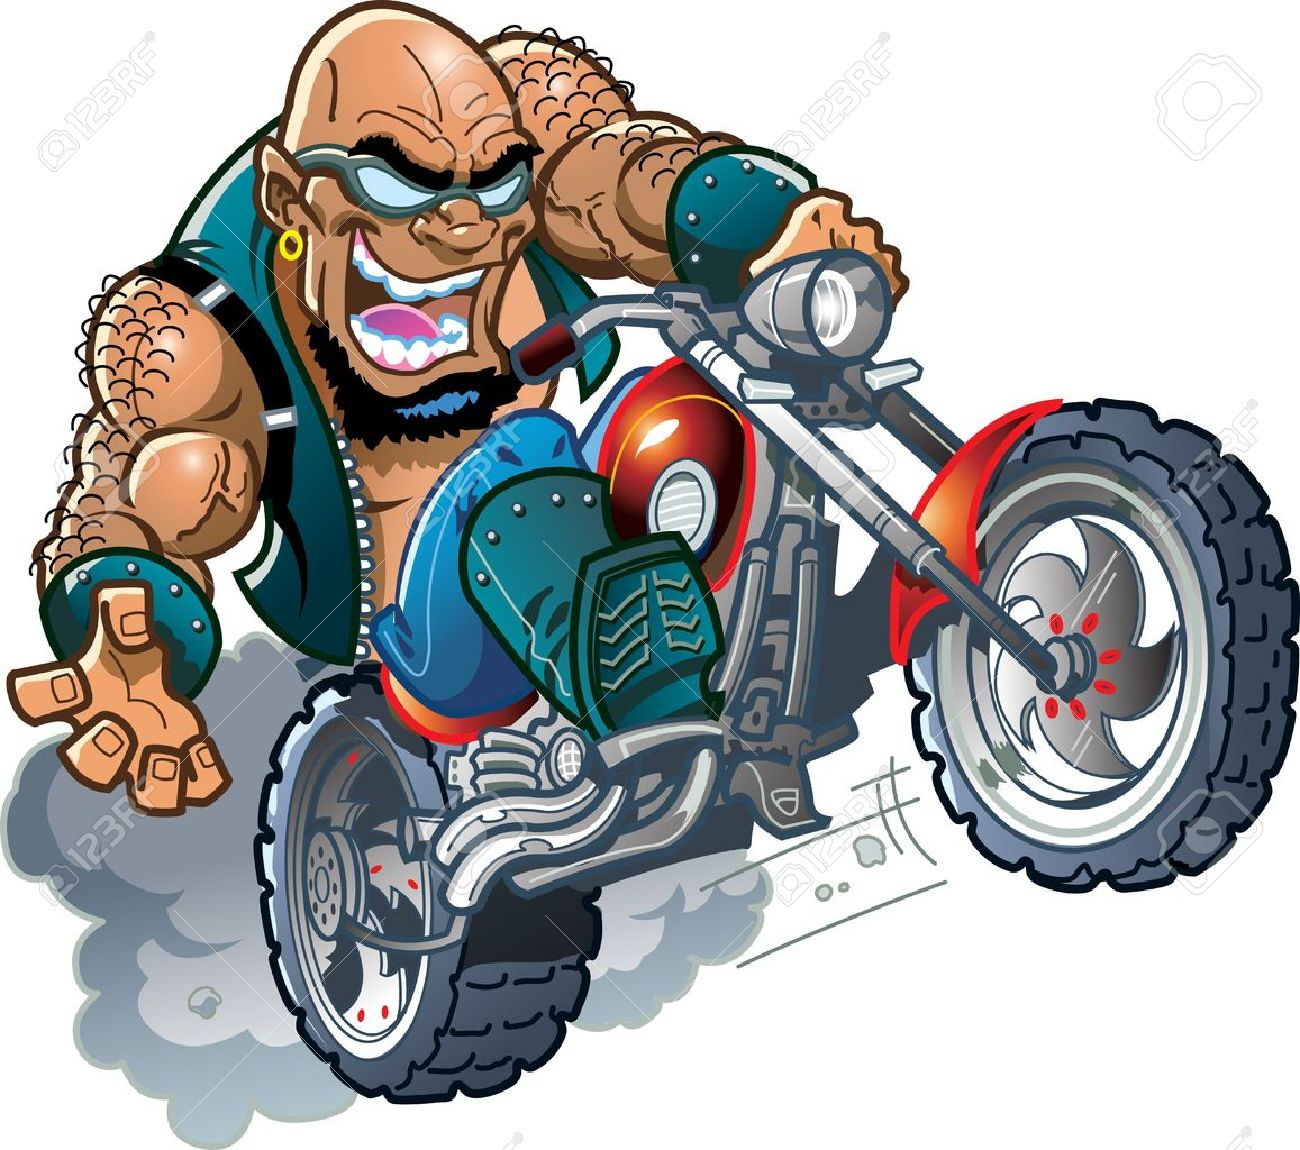 a28ee75475 Vector - Wild Crazy Bald Smiling Biker Dude with Sunglasses on Motorcycle